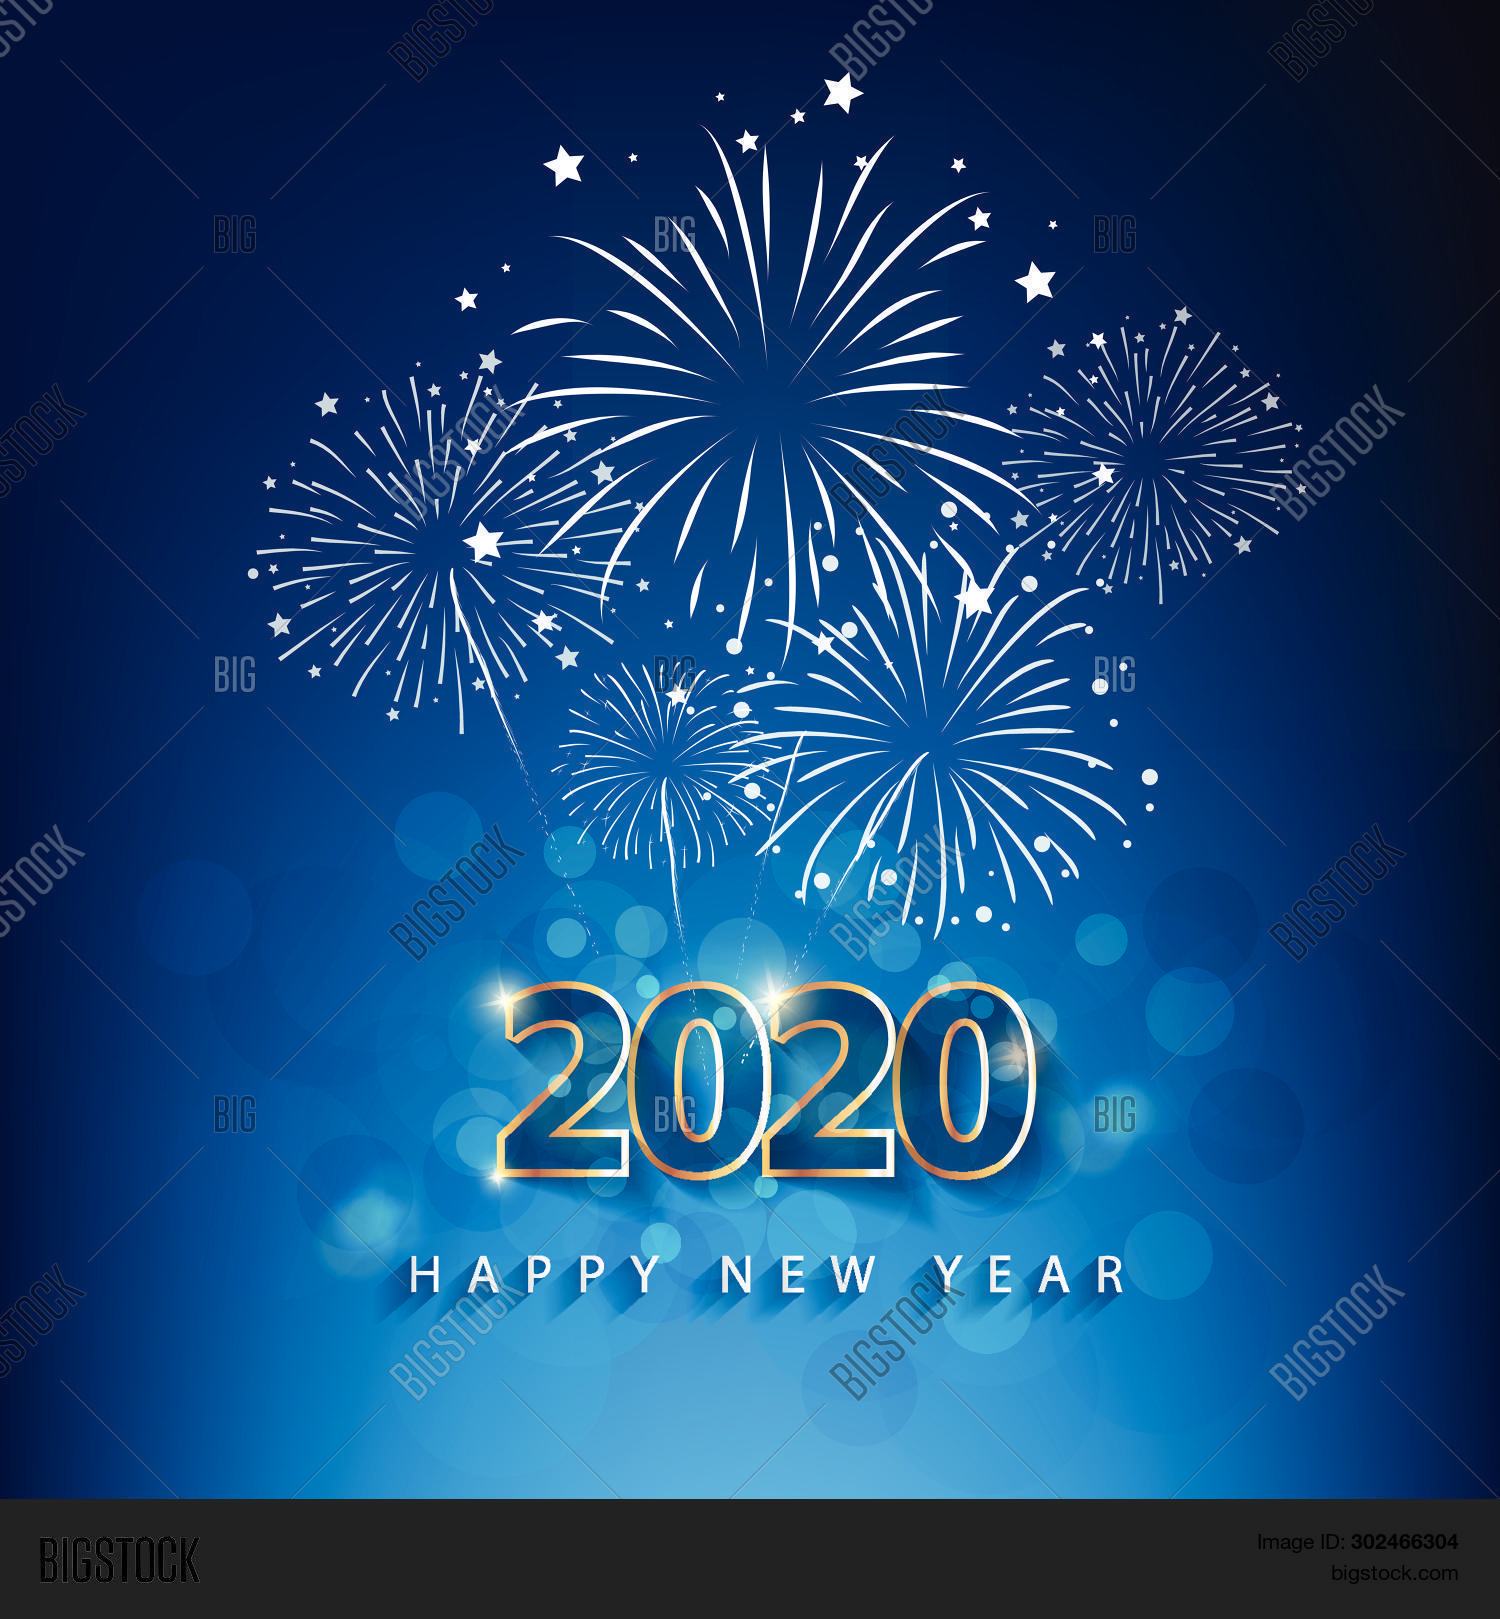 2019,2020,Flashlight,art,asia,asian,background,brochure,china,chinese,christmas,circle,cloud,concept,curve,cut,decoration,flowers,geometric,geometry,happy,holiday,japan,japanese,layout,light,line,lunar,menu,modern,new,oriental,ornament,ornate,paper,pattern,poster,rat,retro,shine,stylization,template,texture,vector,vintage,wallpaper,wave,wishes,year